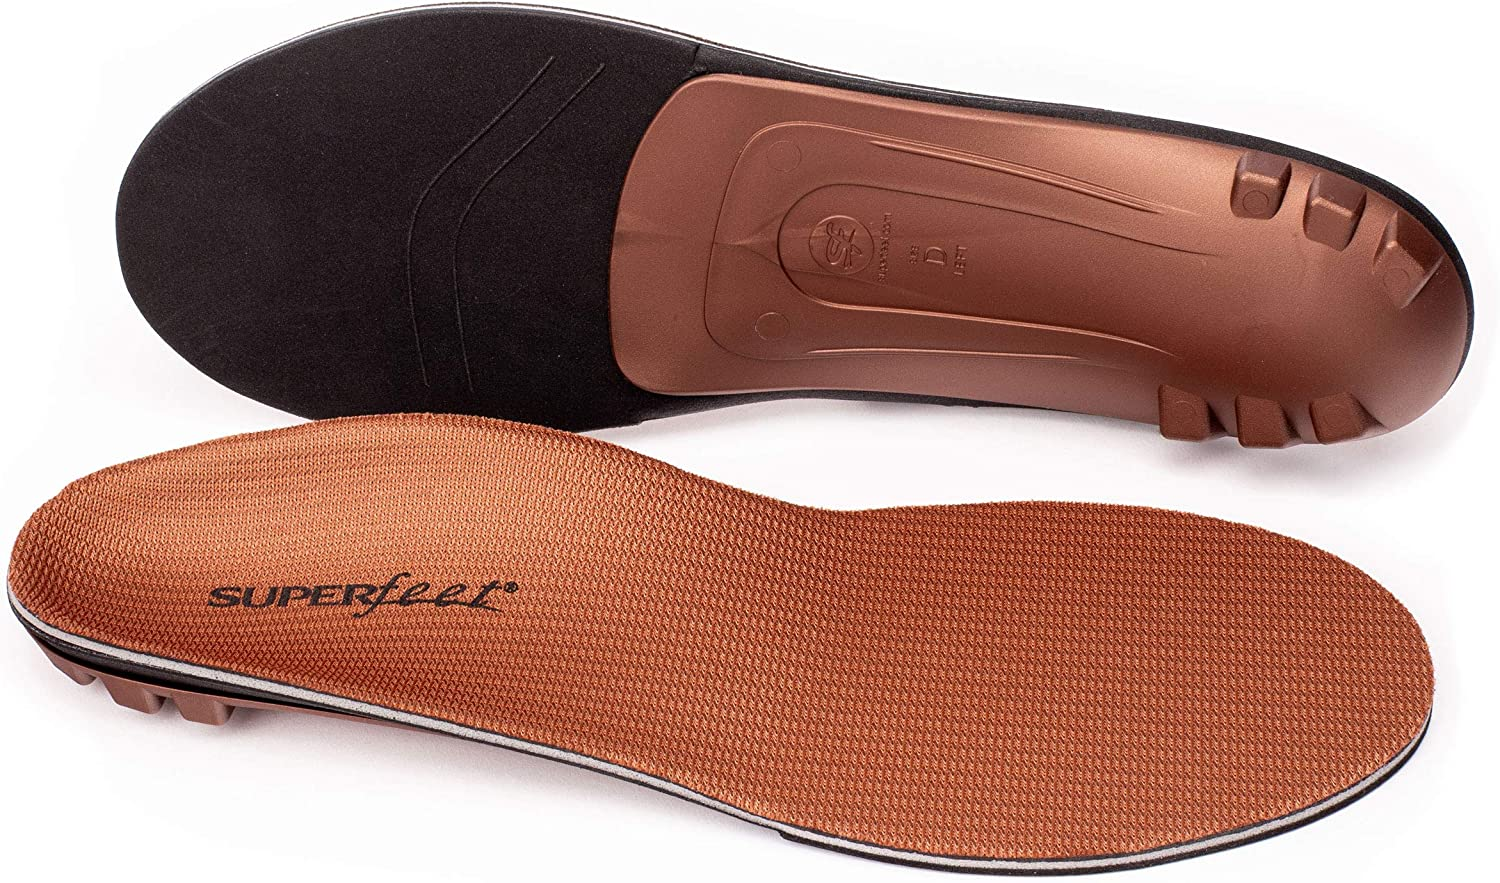 Superfeet COPPER, Memory Foam Comfort plus Support Anti-fatigue Replacement Insoles